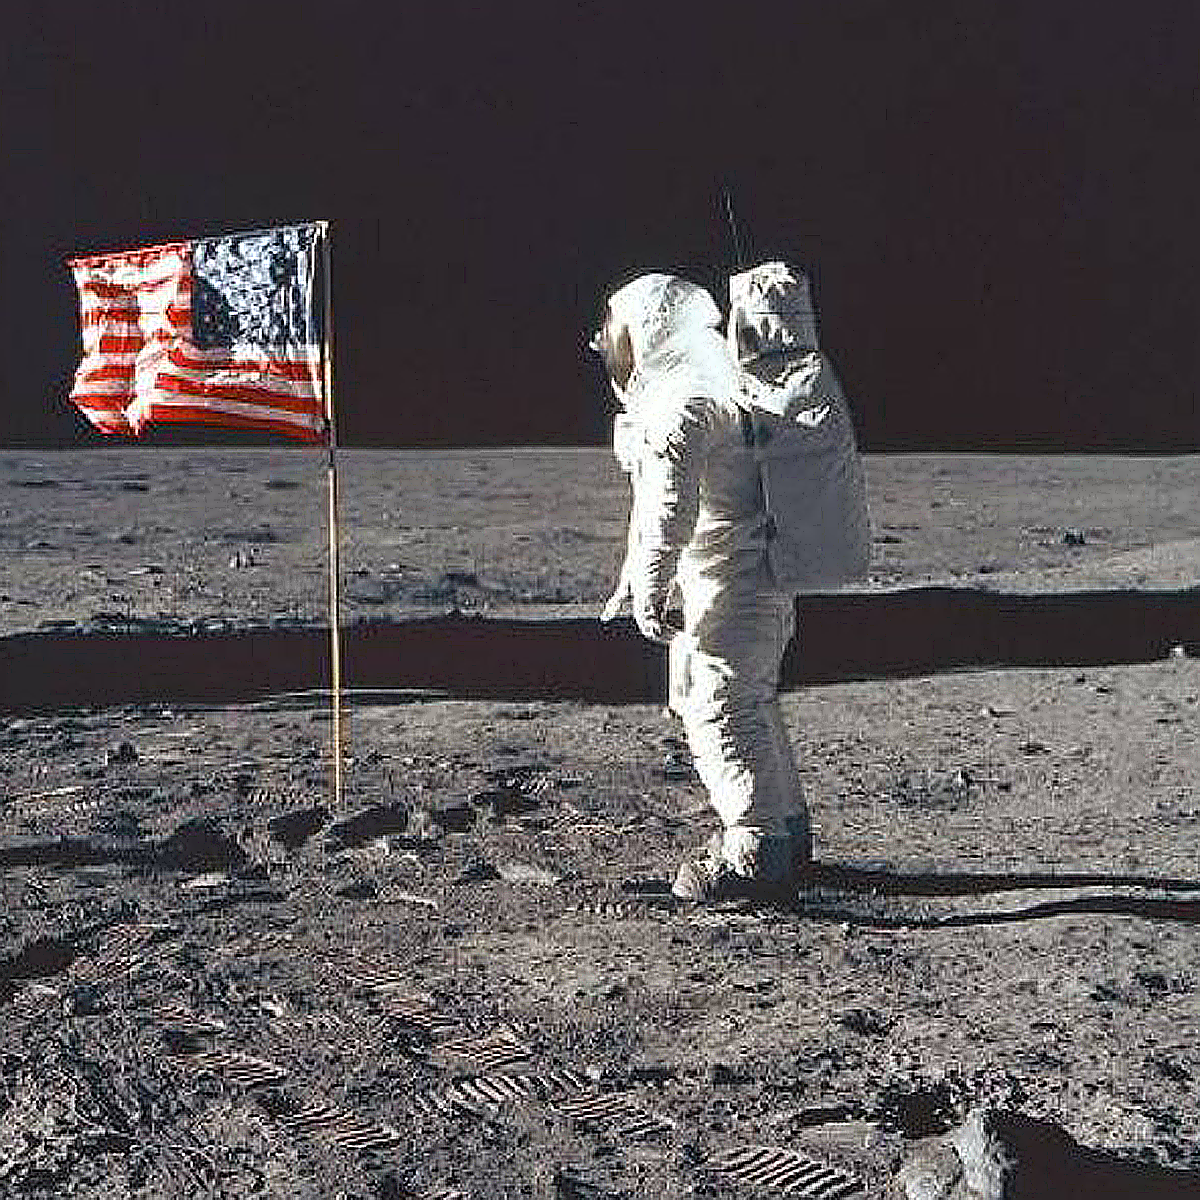 neil armstrong space missions - photo #7